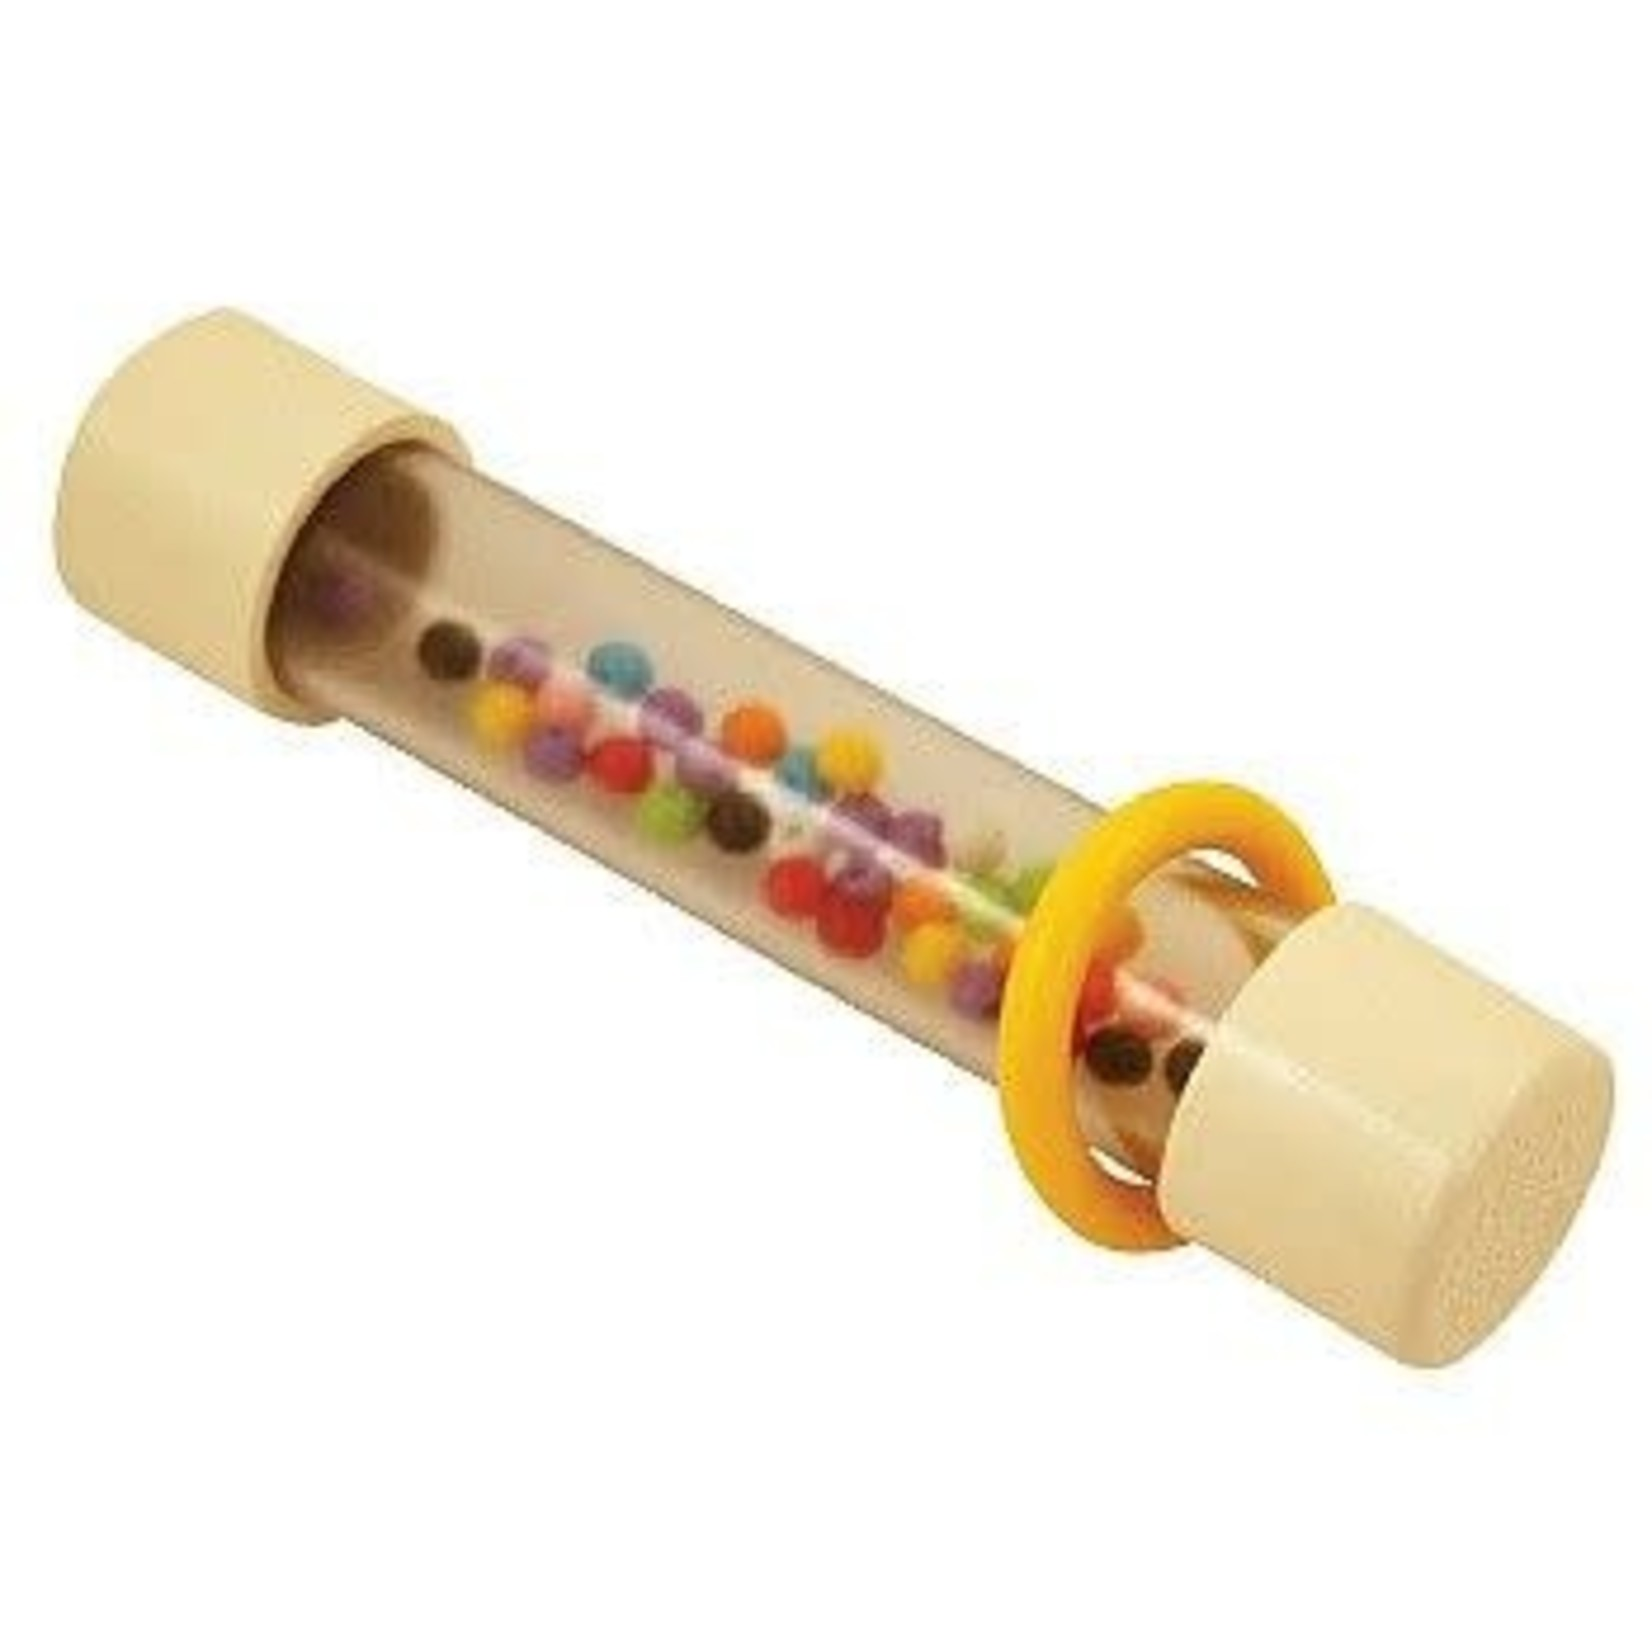 Hari HR Smart Play Prt Toy, Rattle Foot Toy